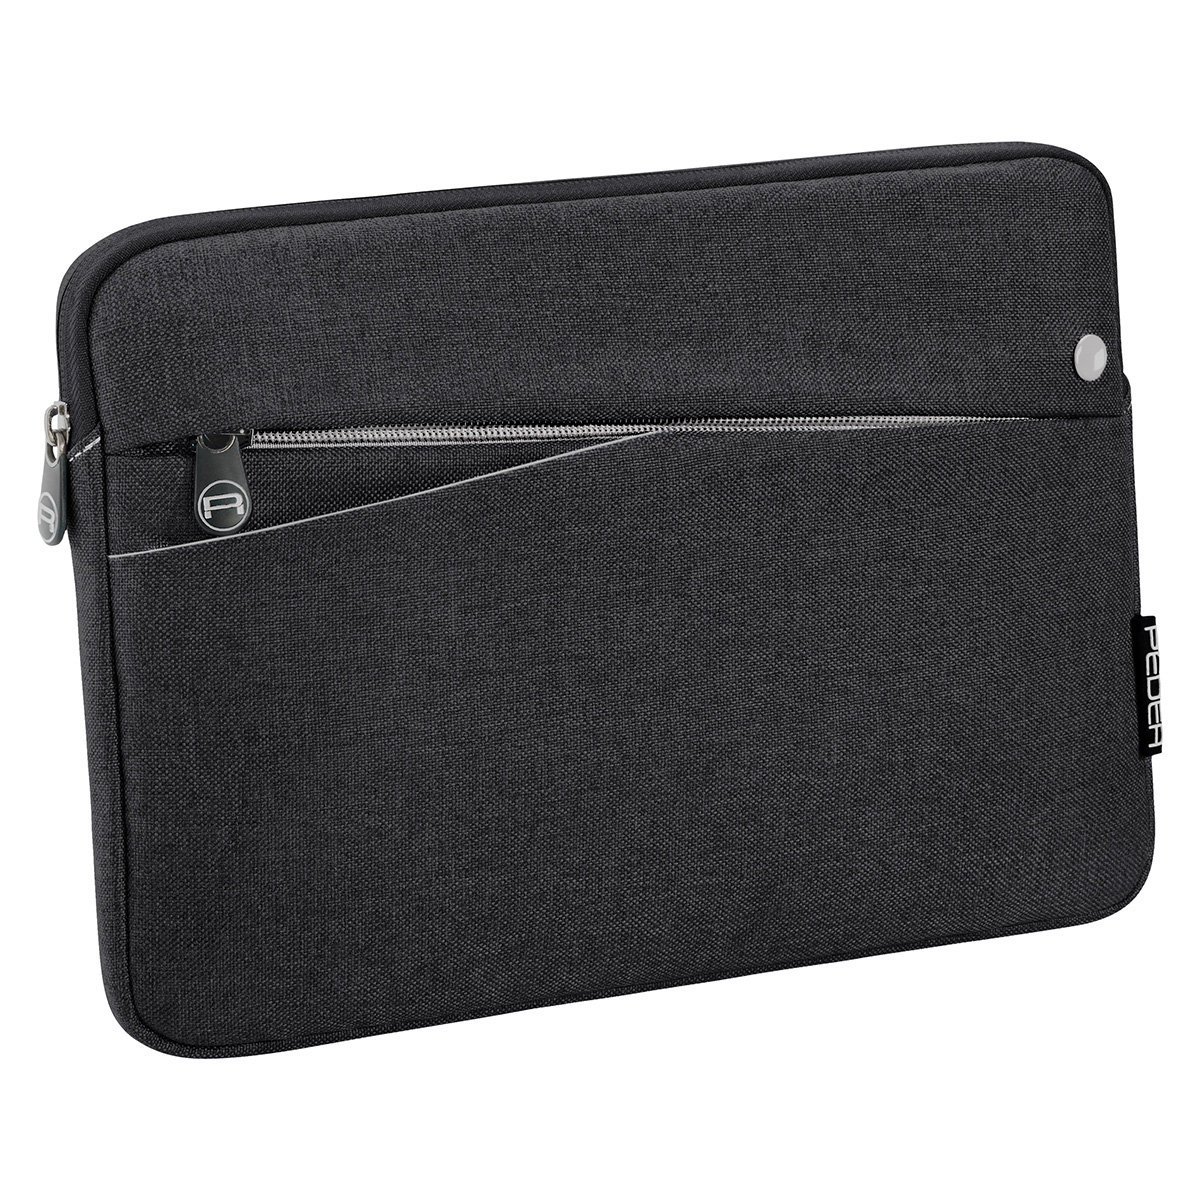 PEDEA Fashion Tablet Case Sleeve 10.1 inch, black